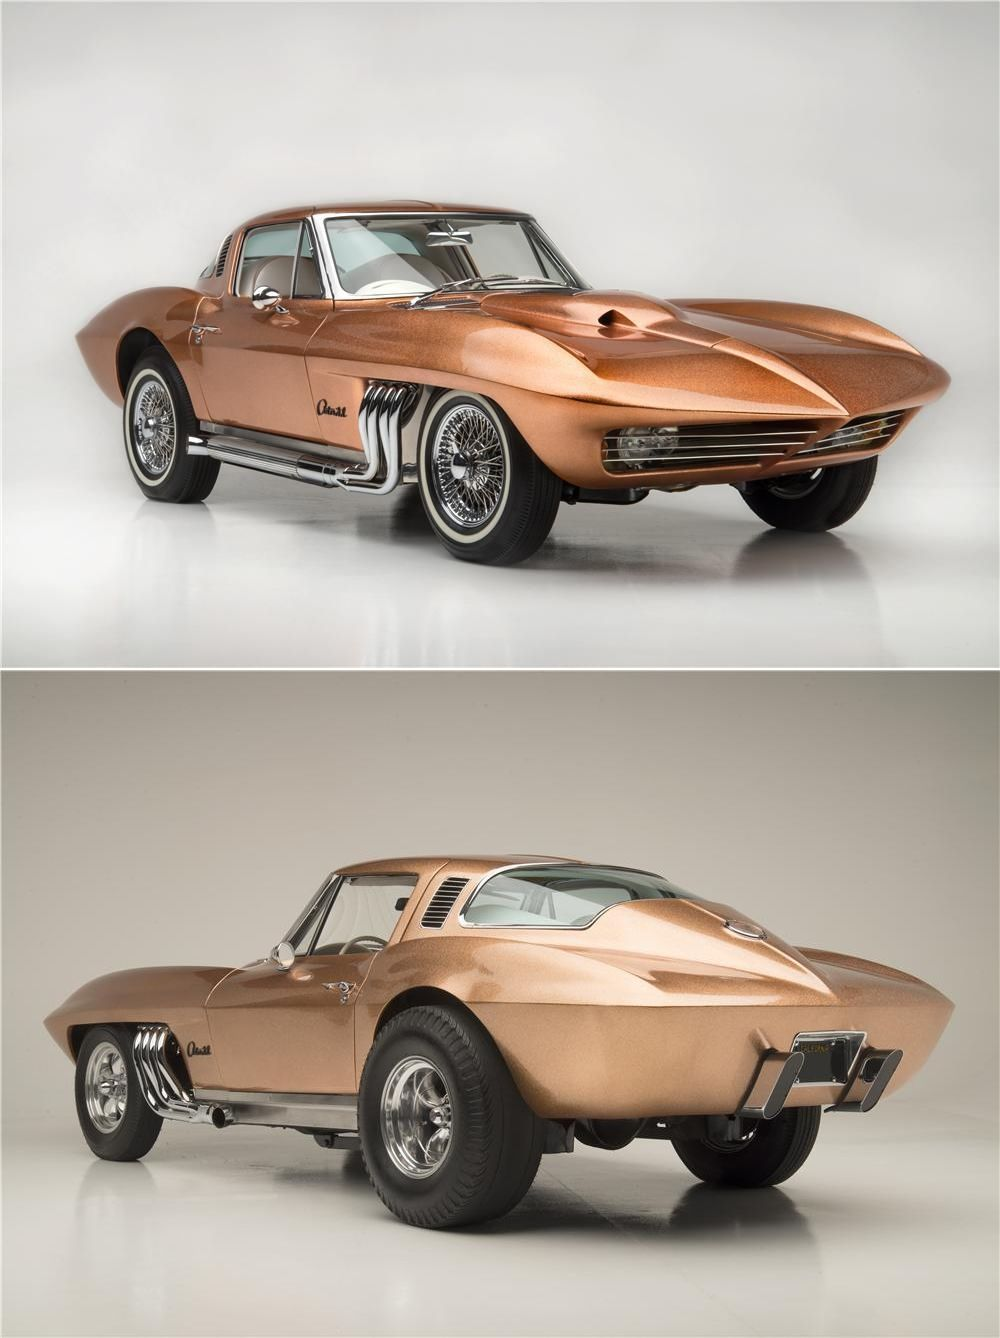 1963 asteroid corvette customized by george barris for boat racer bob nordskog with a. Black Bedroom Furniture Sets. Home Design Ideas